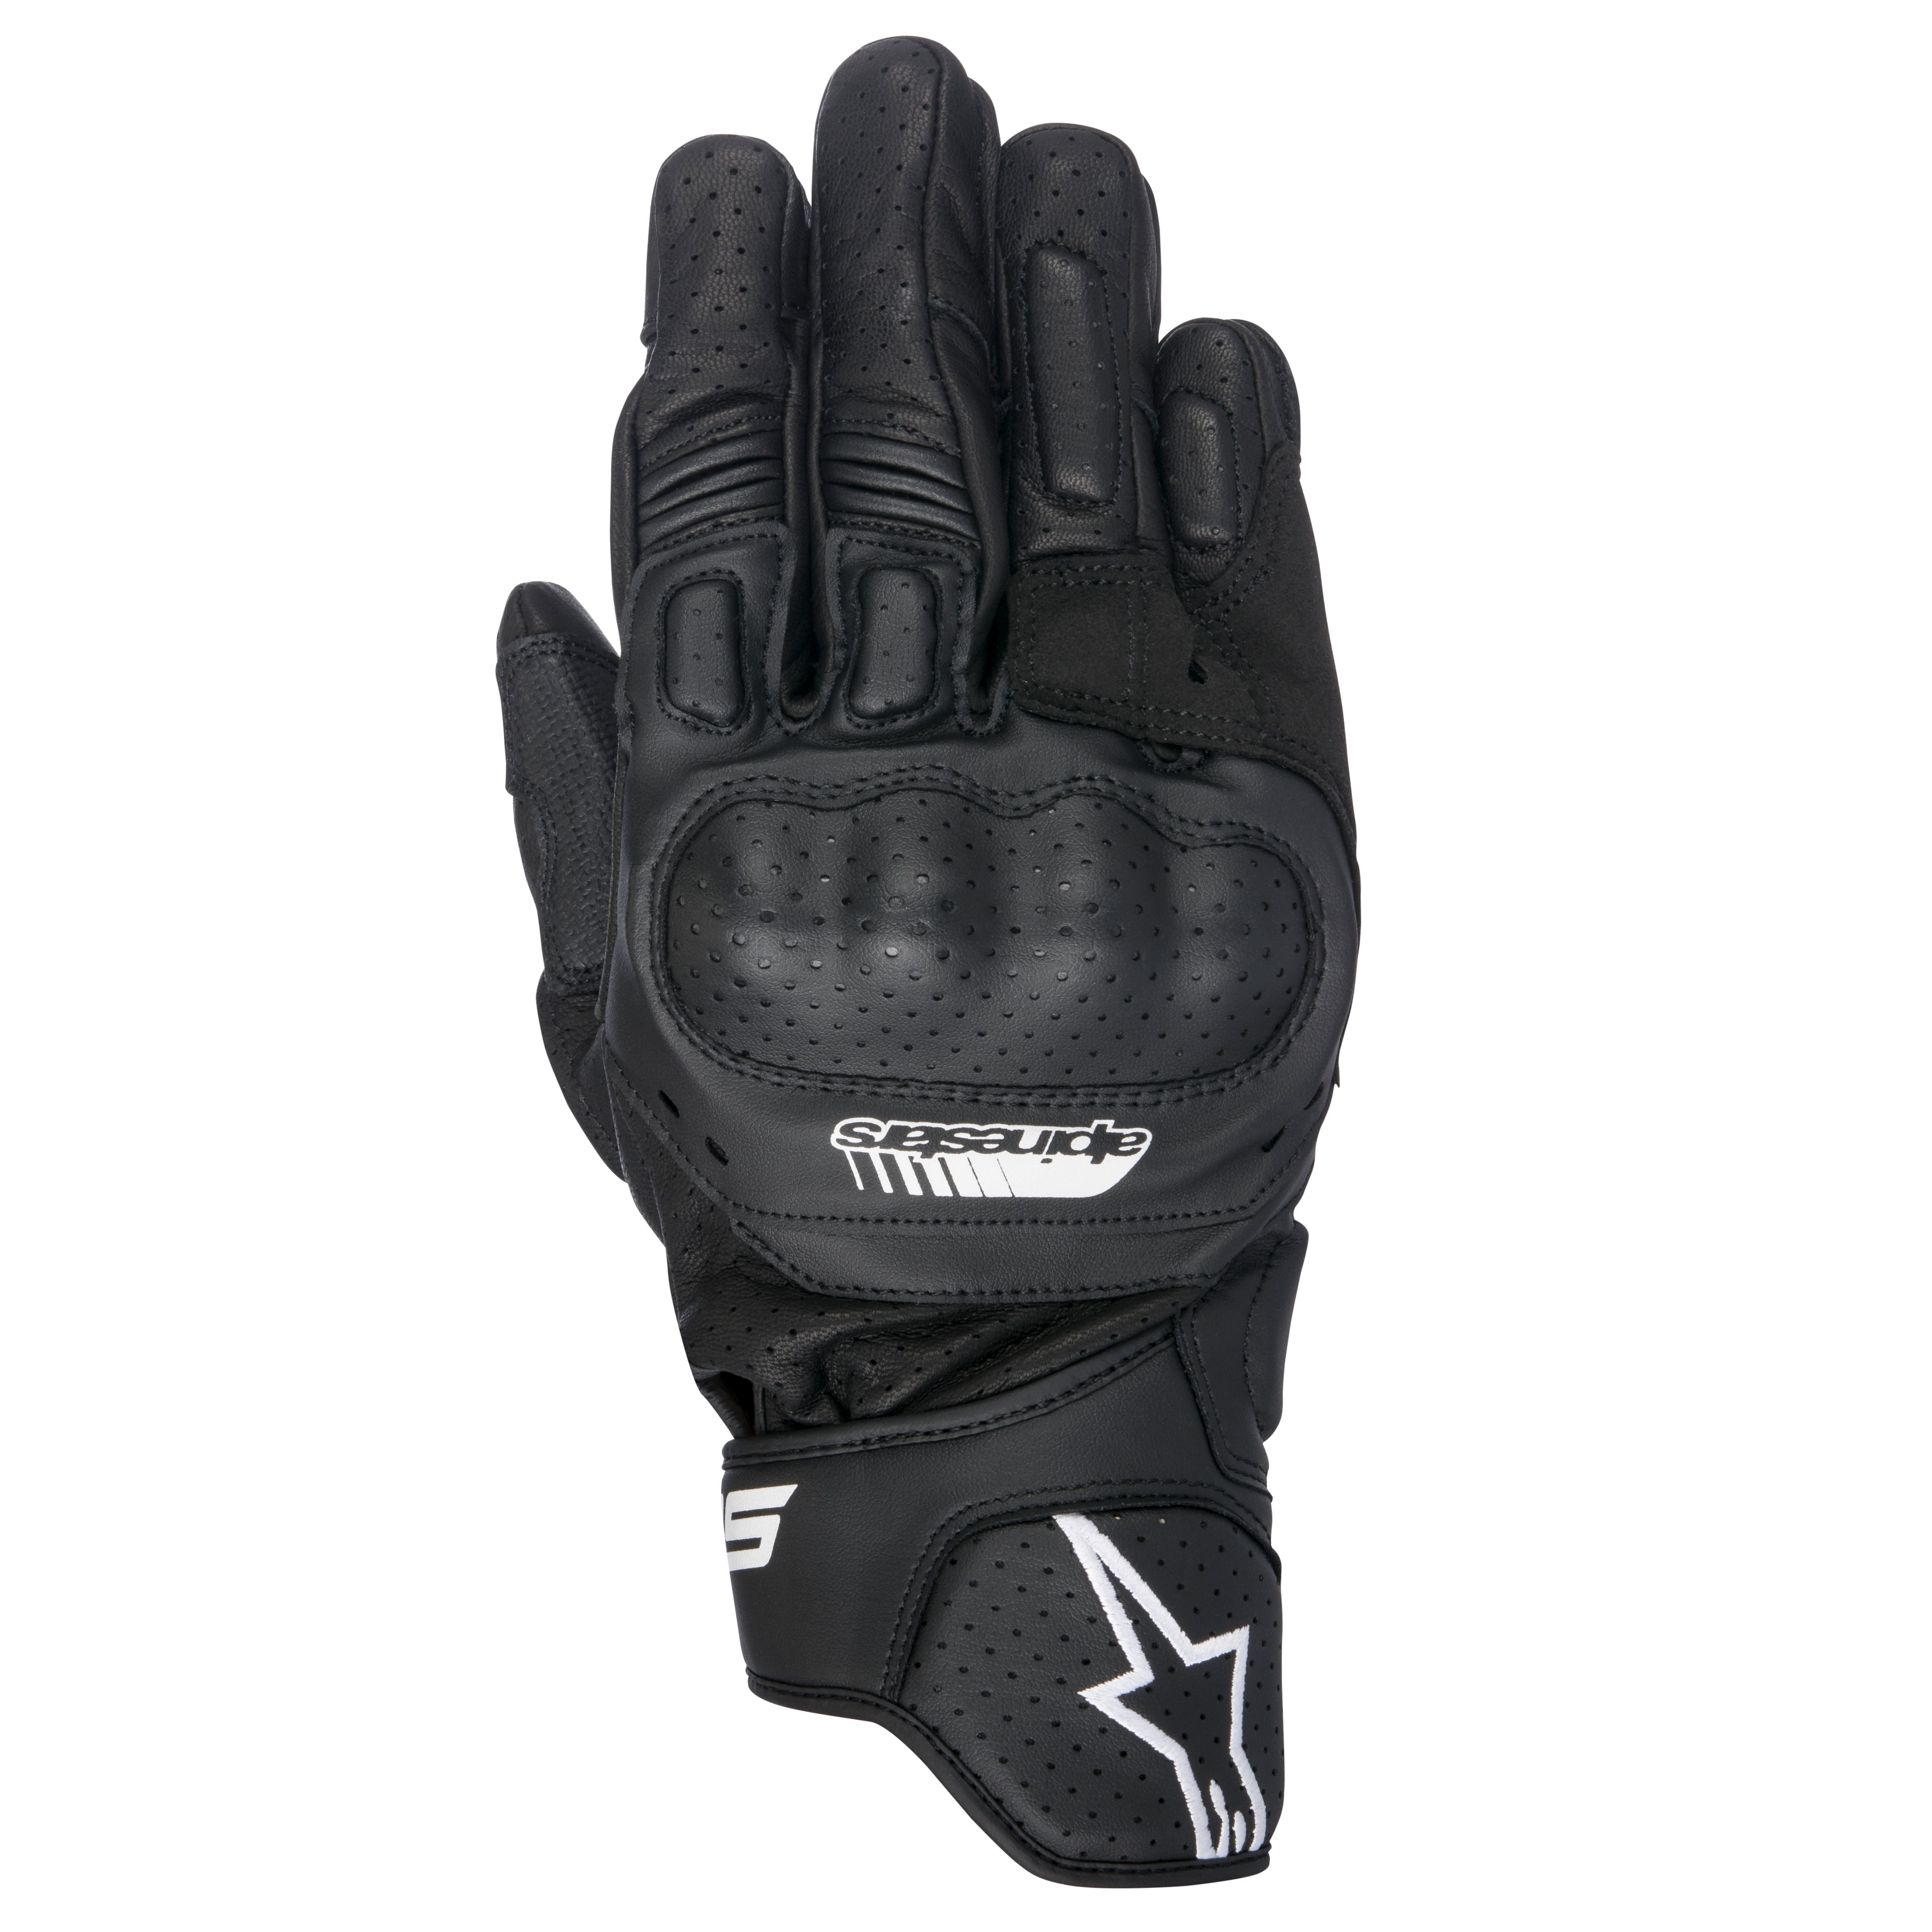 gants alpinestars sp 5 gants moto. Black Bedroom Furniture Sets. Home Design Ideas